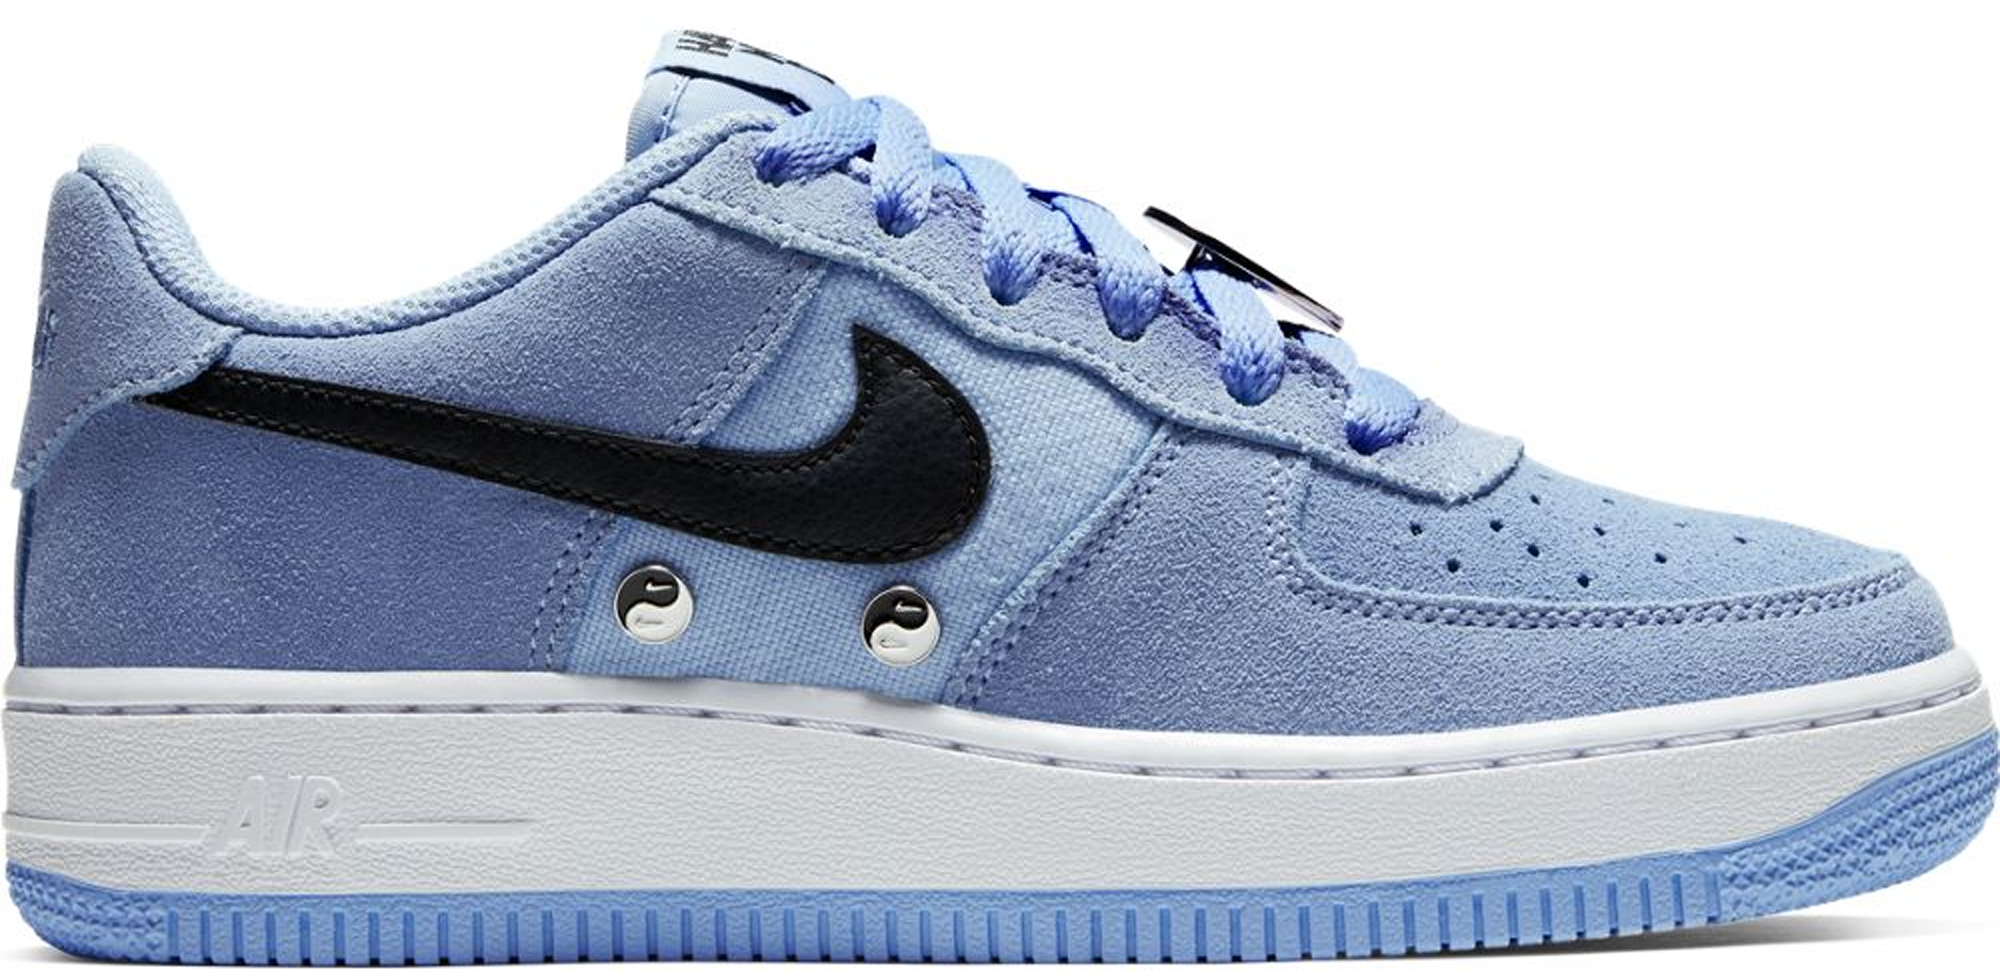 Air Force 1 Low Have a Nike Day Indigo Fog (GS)